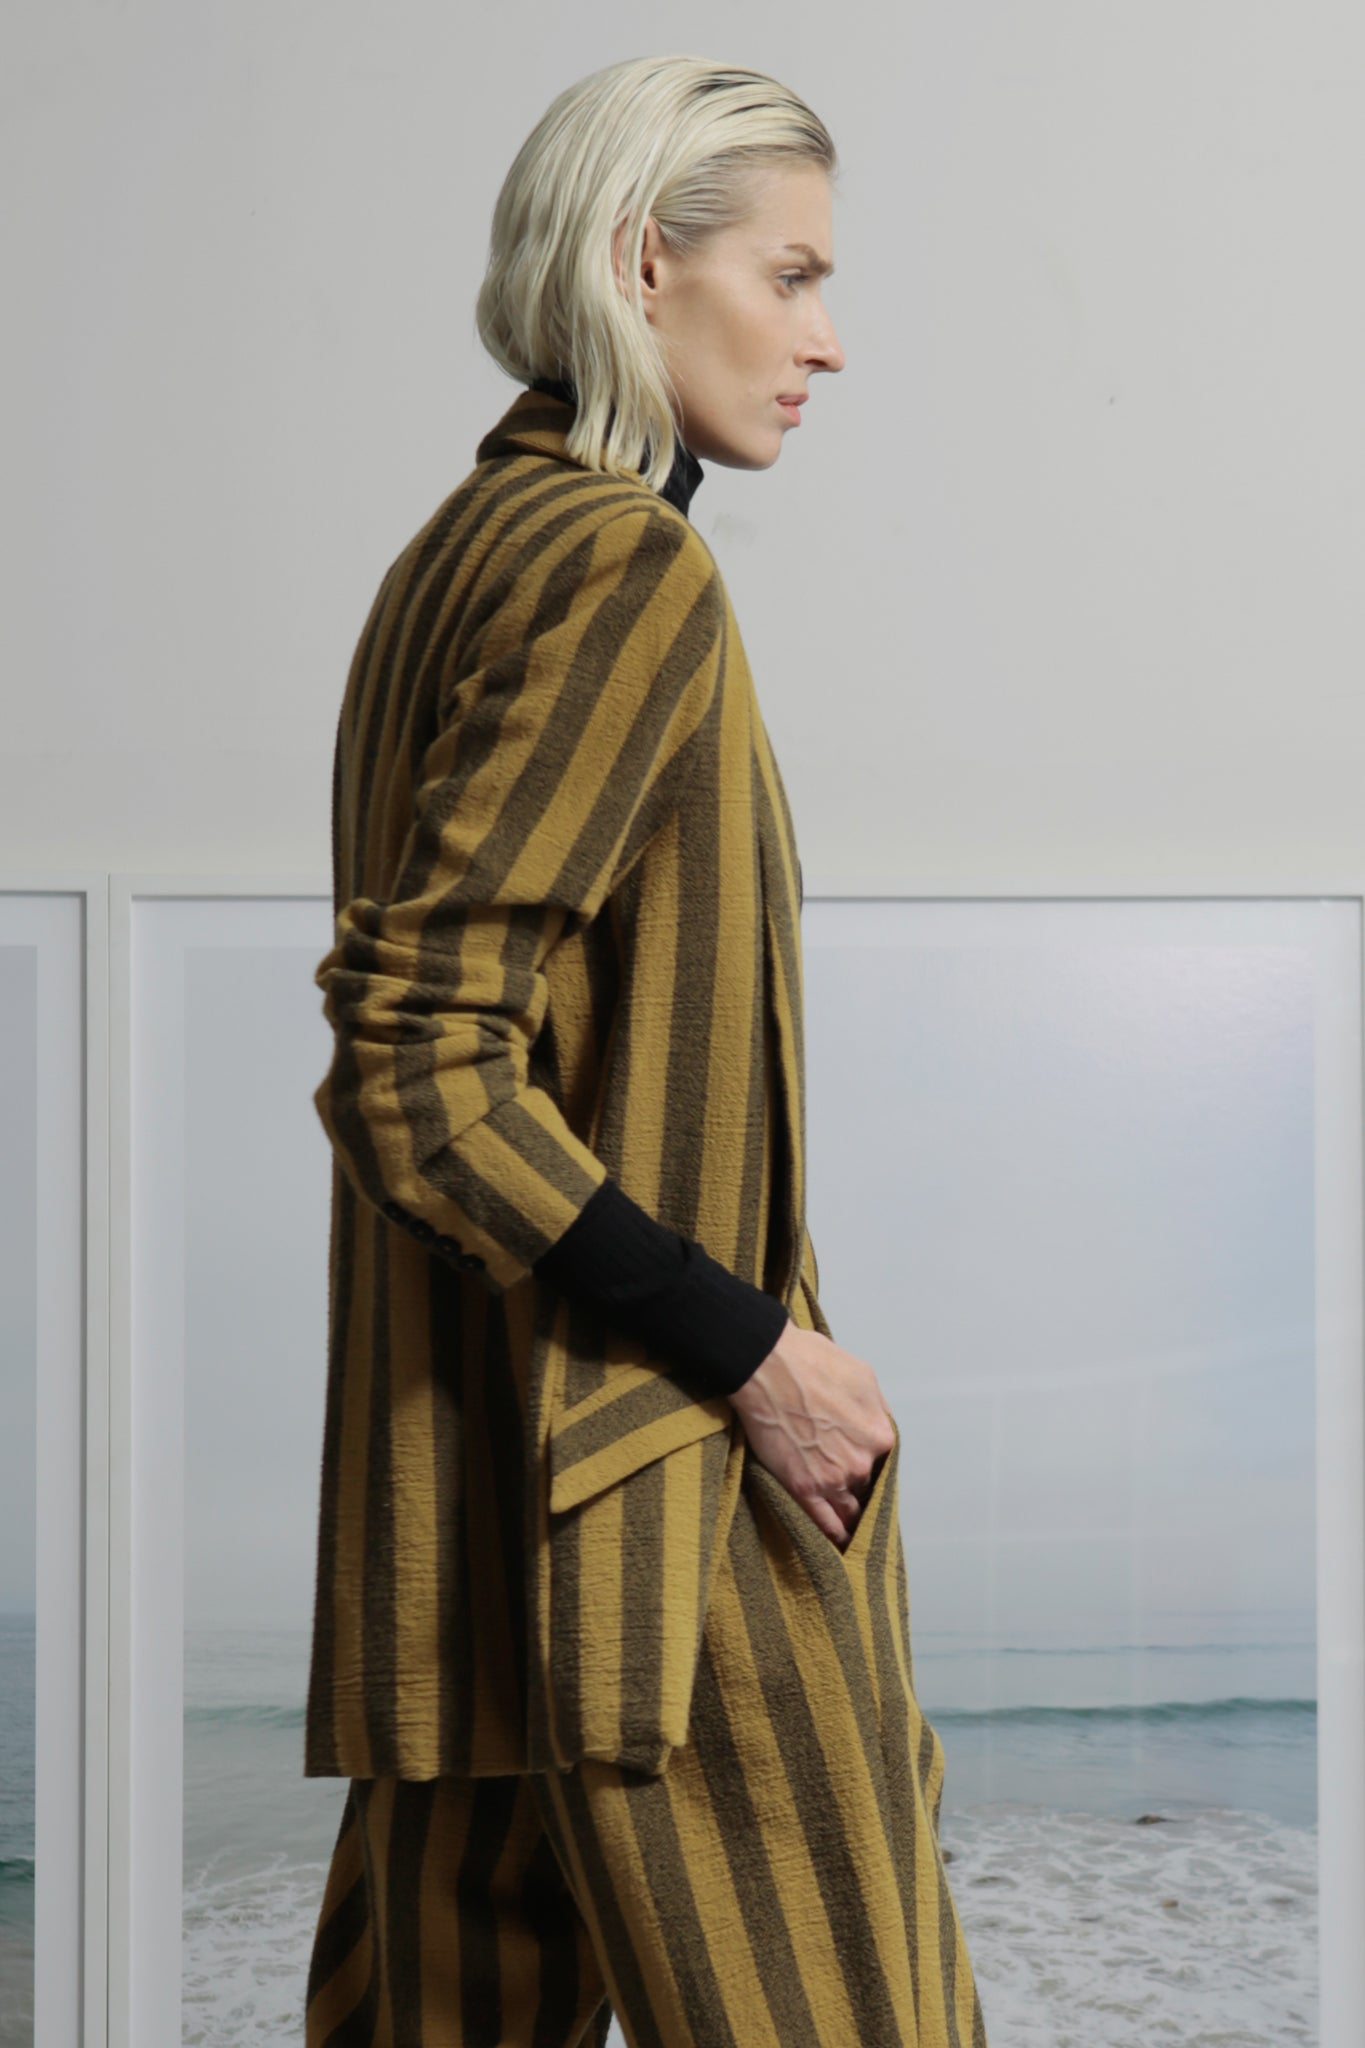 Model wears size 2 ZELDA BLAZER - GOLD STRIPE by Heidi Merrick made in Downtown Los Angeles